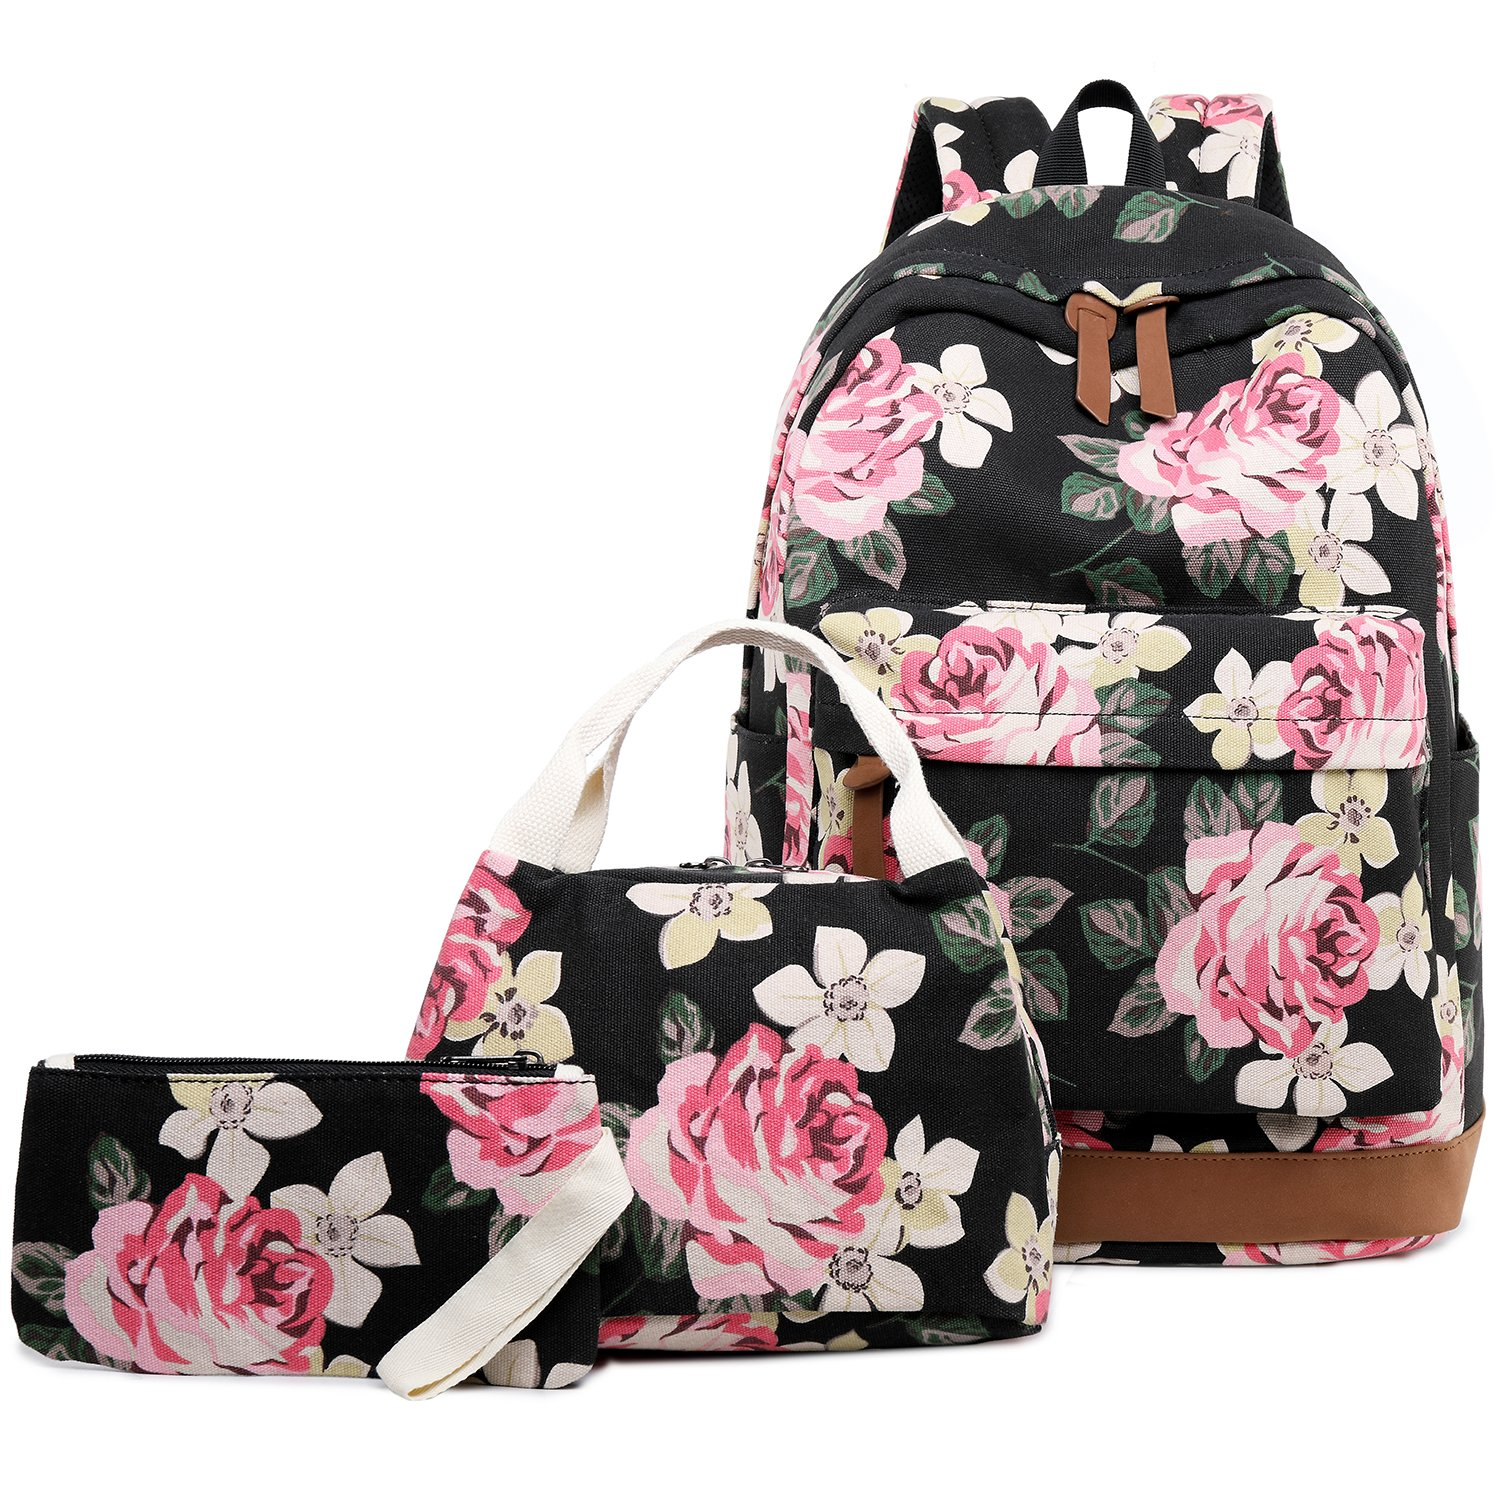 Abshoo Canvas Dot Backpack Cute Teen Girls Backpacks Set 3 Pcs School Bookbags ZLSB0135PB04